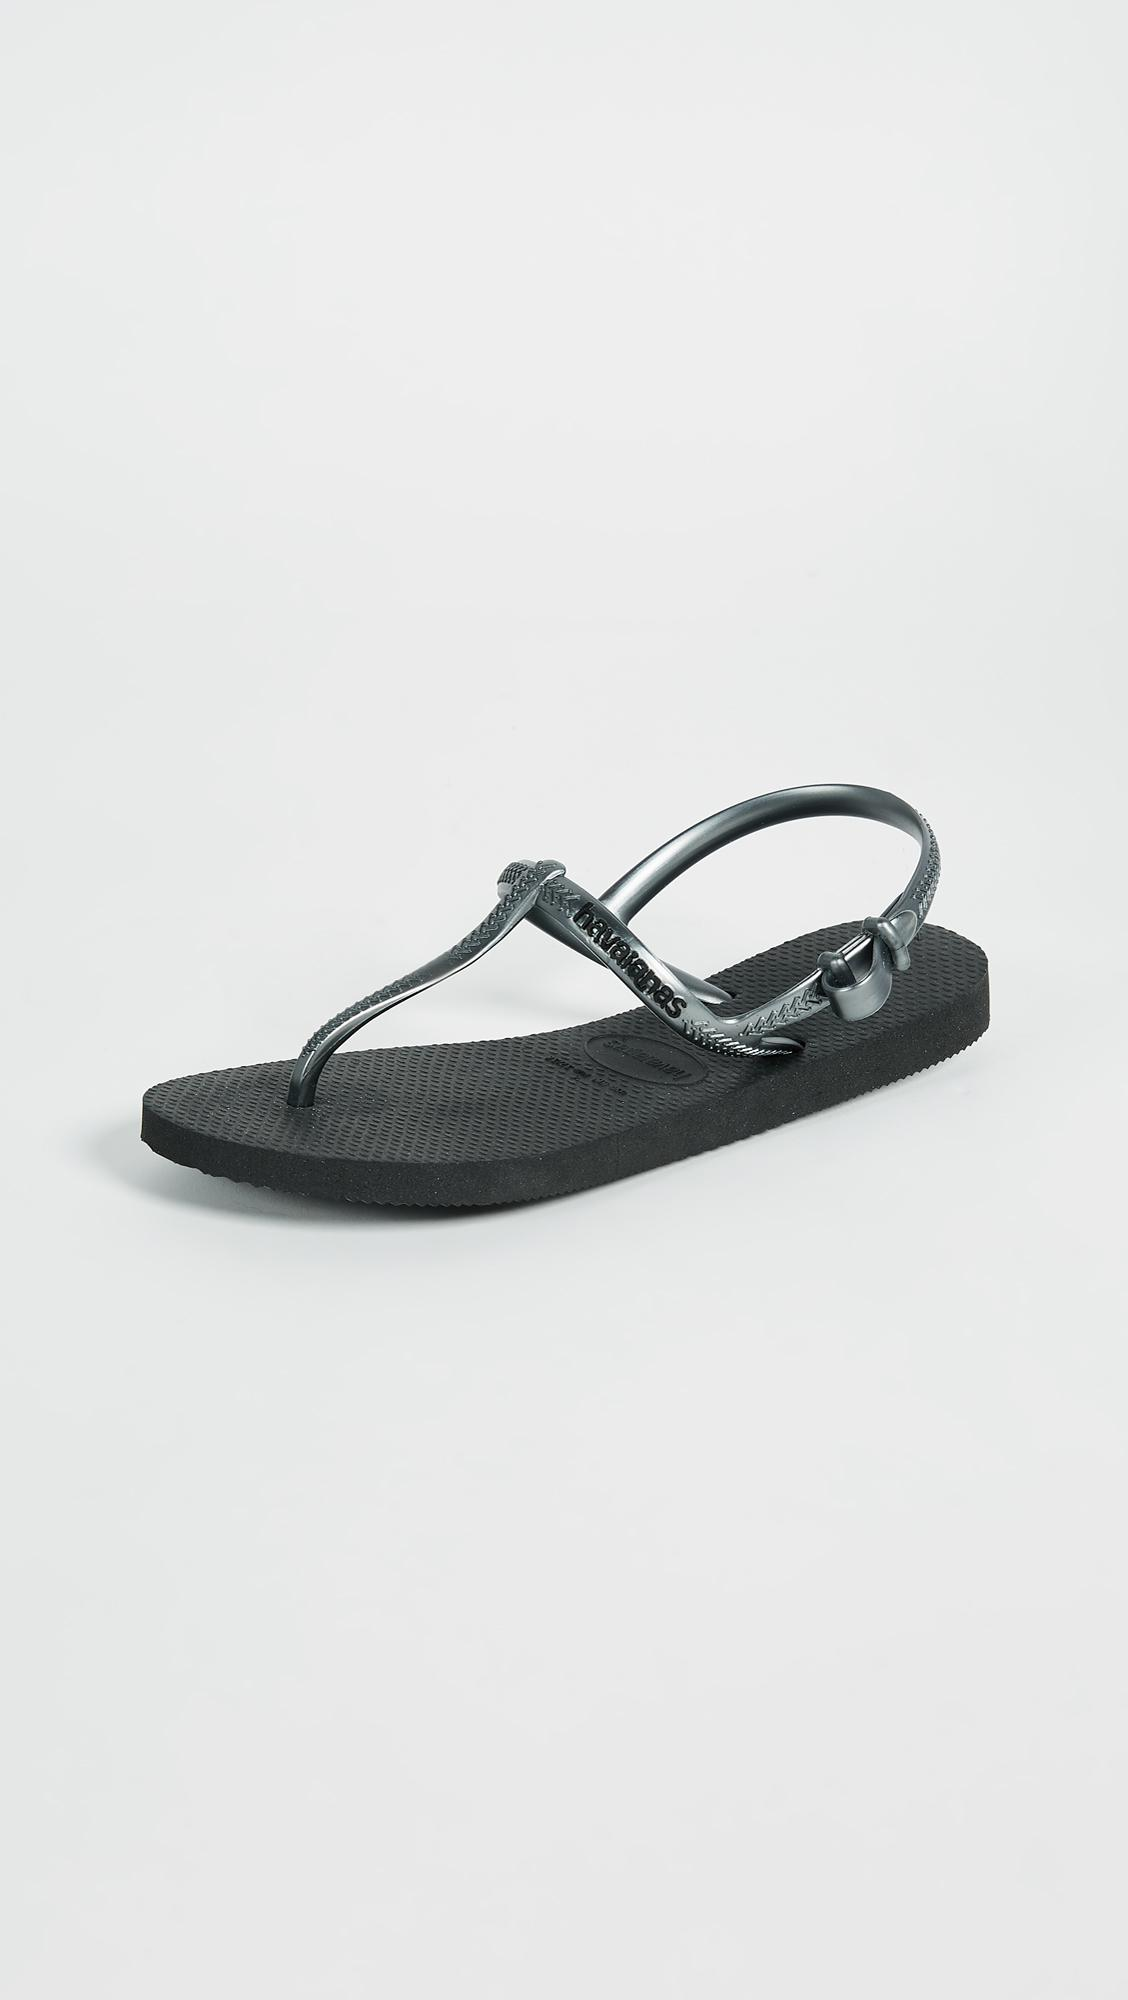 452876359775f8 Havaianas Freedom T Strap Sandals in Black - Lyst